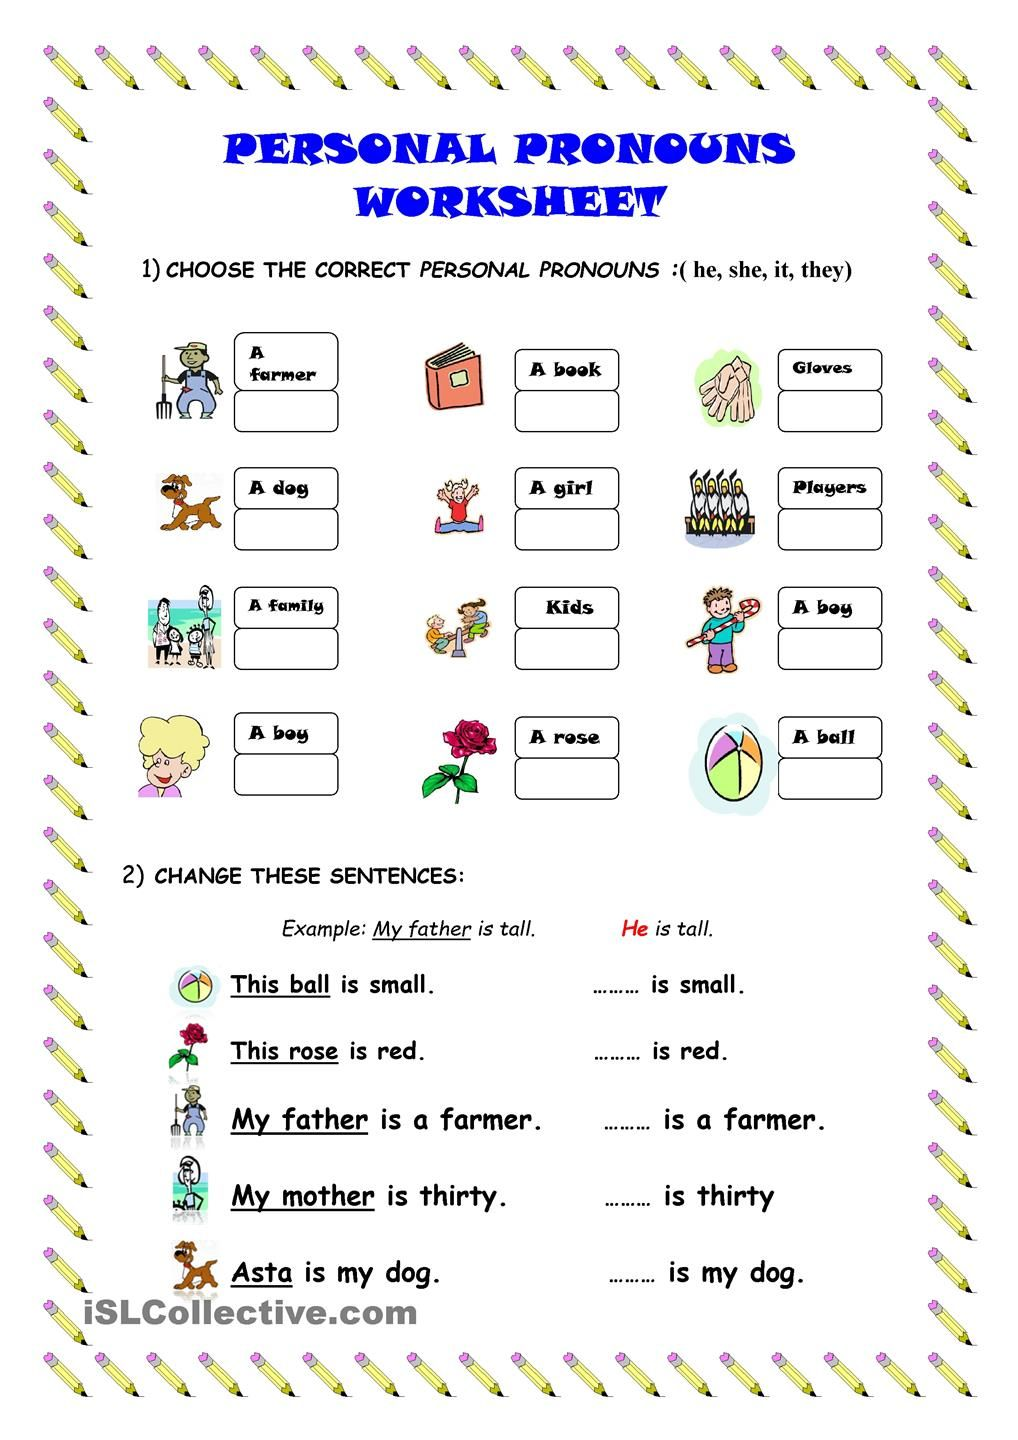 Worksheets Free Pronoun Worksheets personal pronouns worksheet kindergarten level learn english level